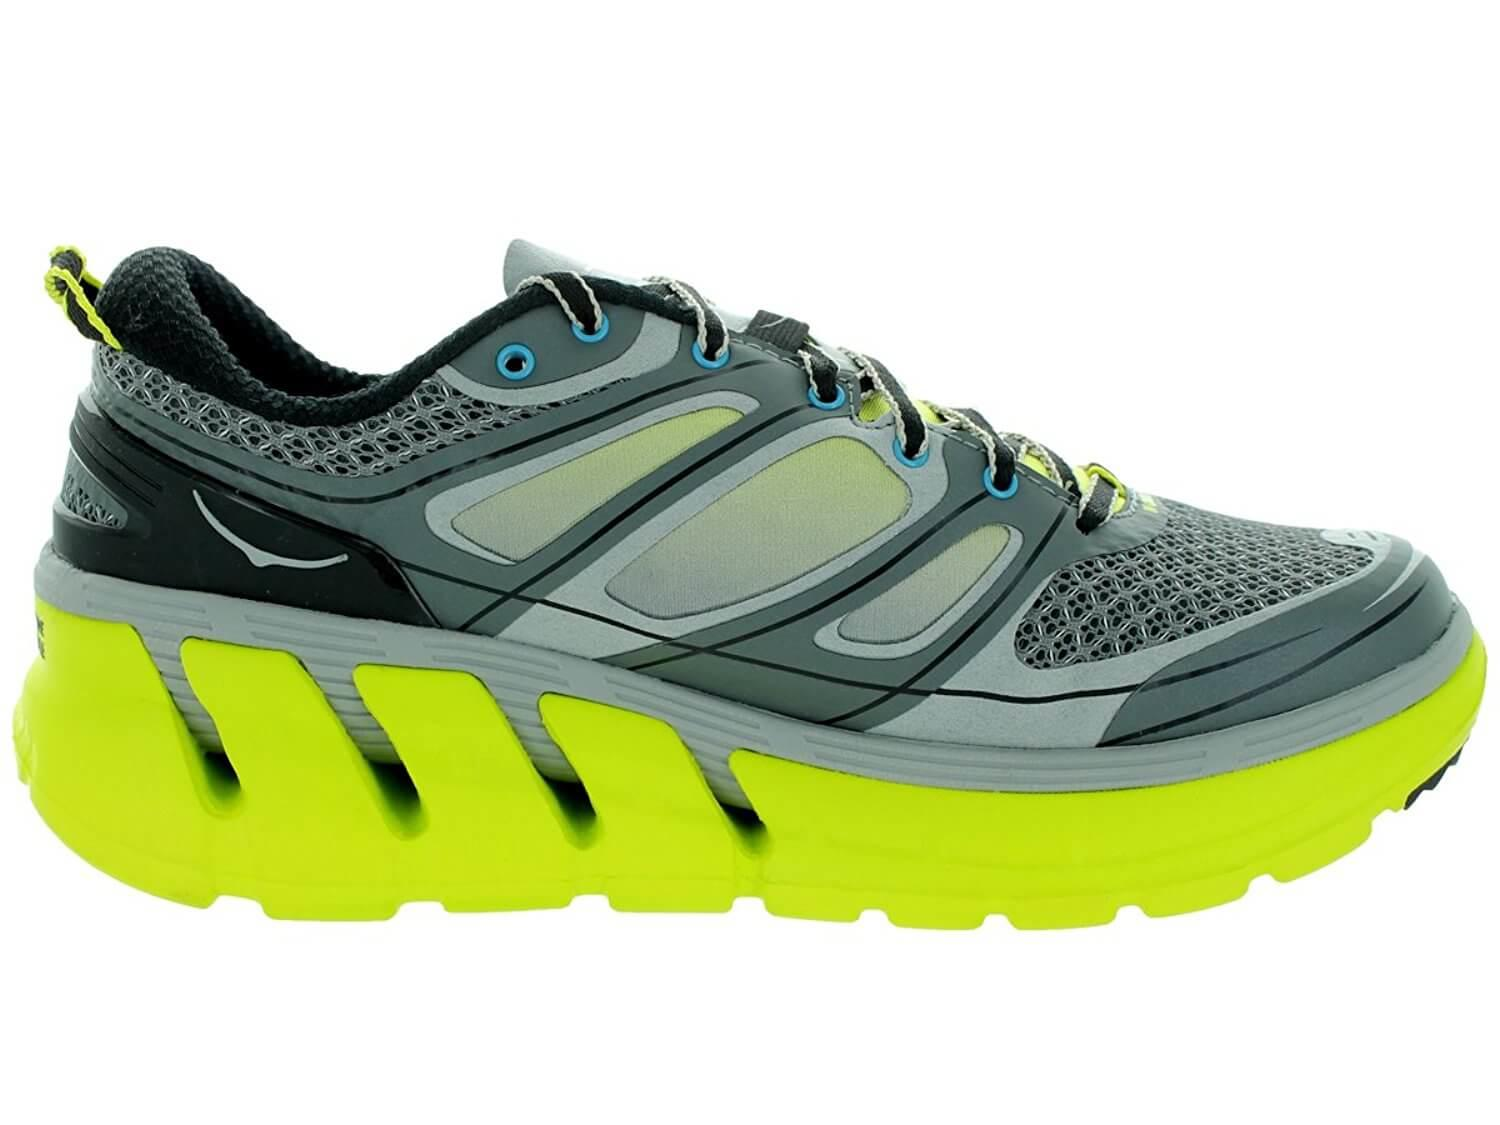 the Hoka One One Conquest 2 shown from the side